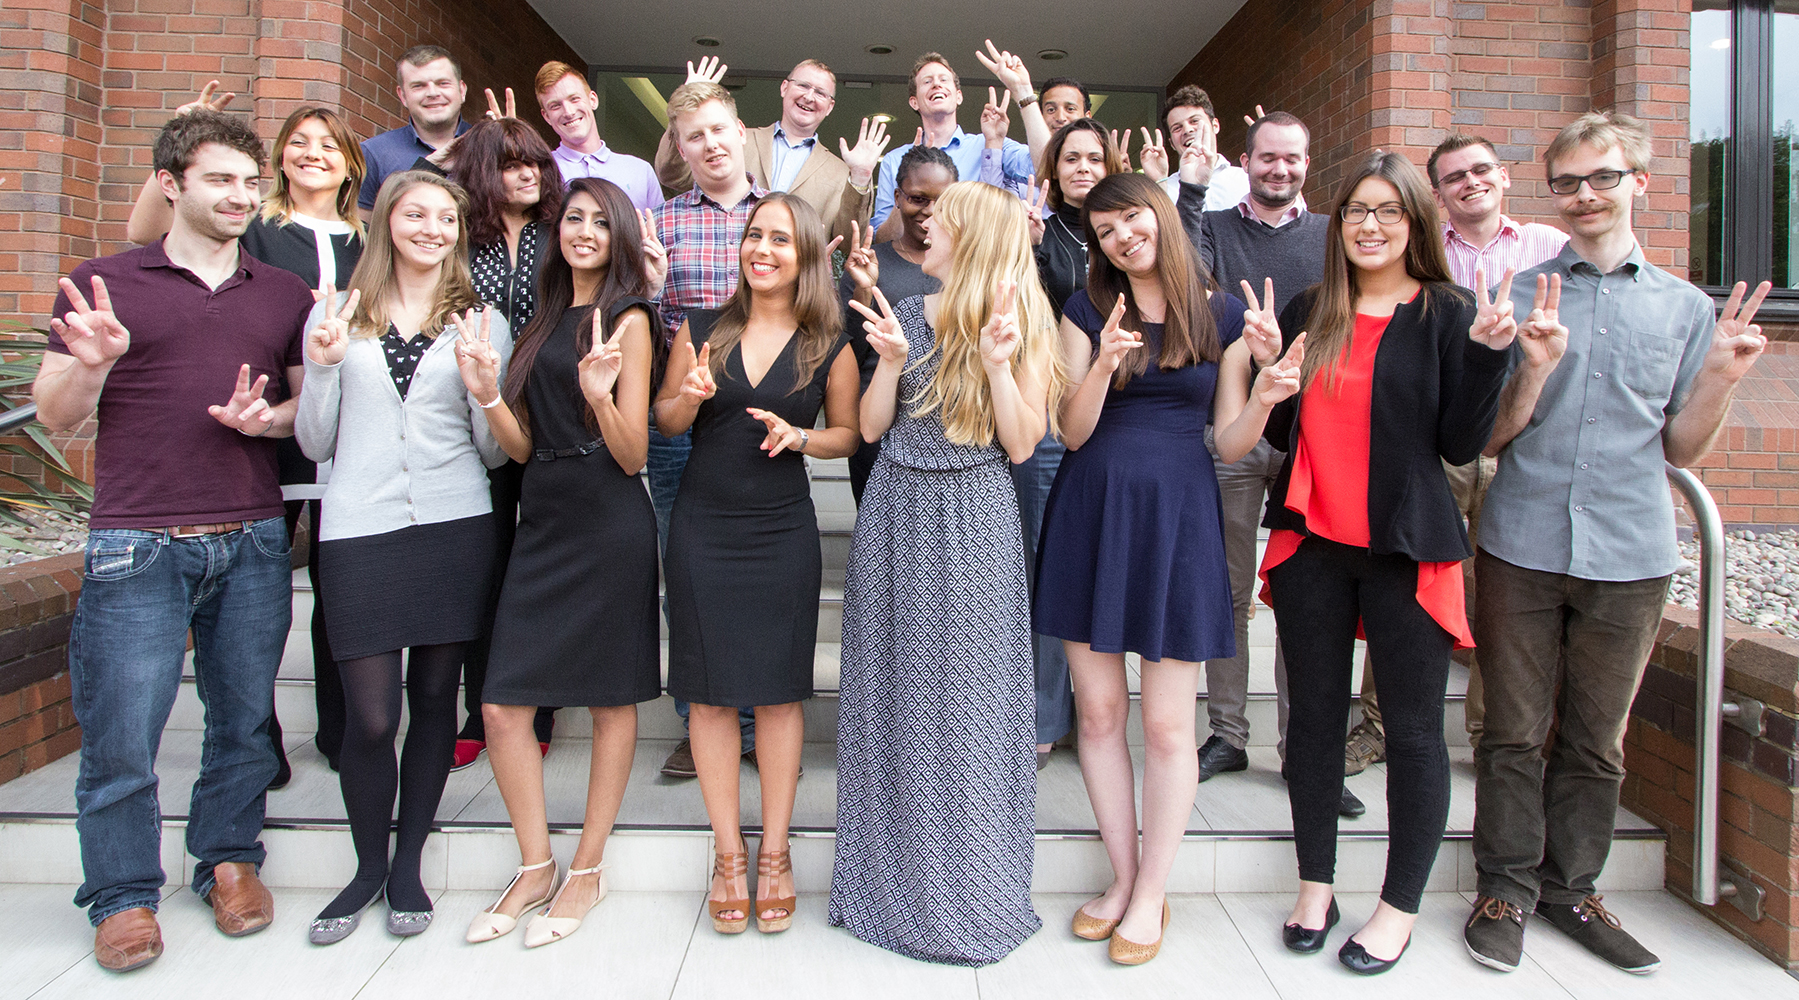 DSN Marketing team photo - a digital marketing agency and ecommerce consultancy in Horsham, West Sussex